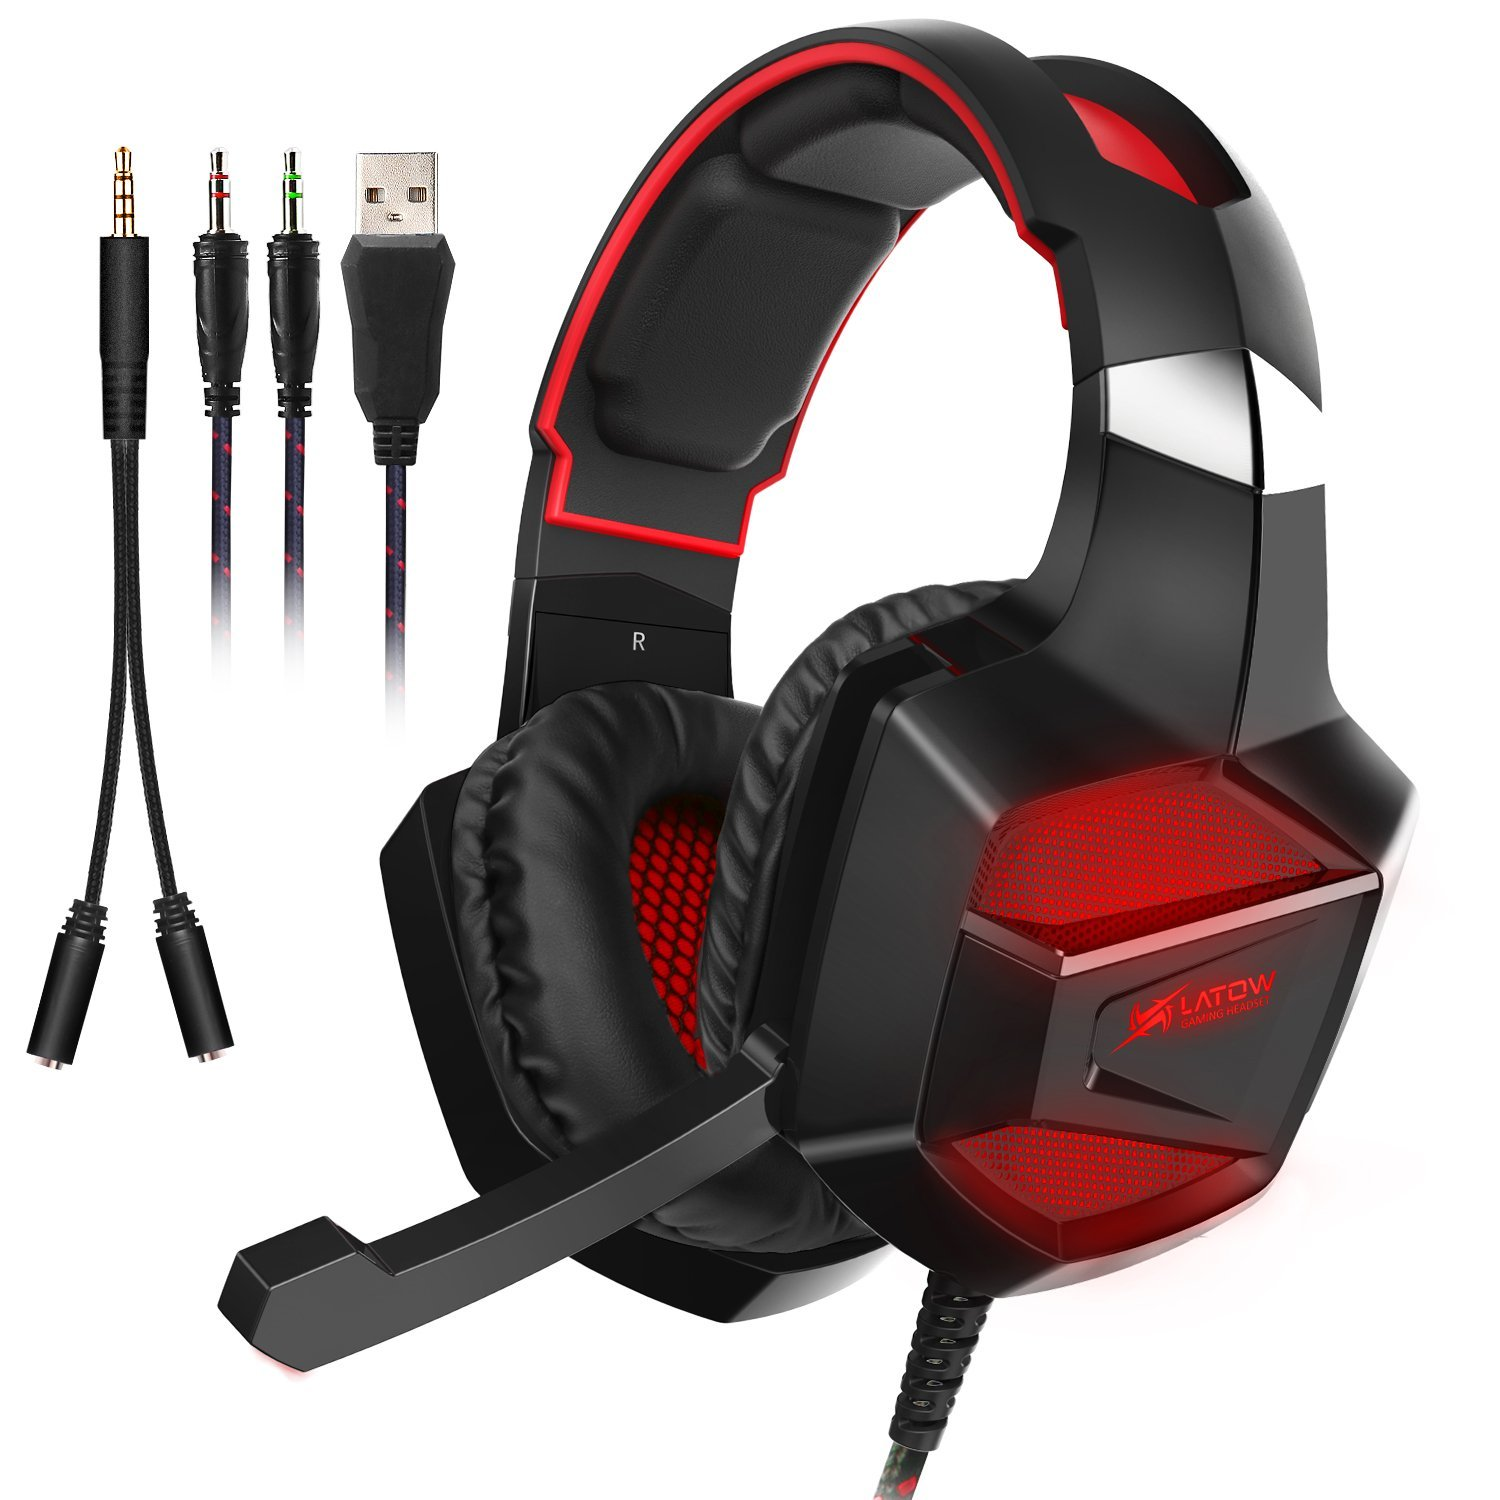 LATOW Stereo Gaming Headset for PS4, Xbox One, Nintendo Switch Games, PC, Surround Sound Over-Ear Headphones with Noise Cancelling Mic, Soft Memory Earmuffs, 40mm Driver, 7 Colors LED Gaming Headset